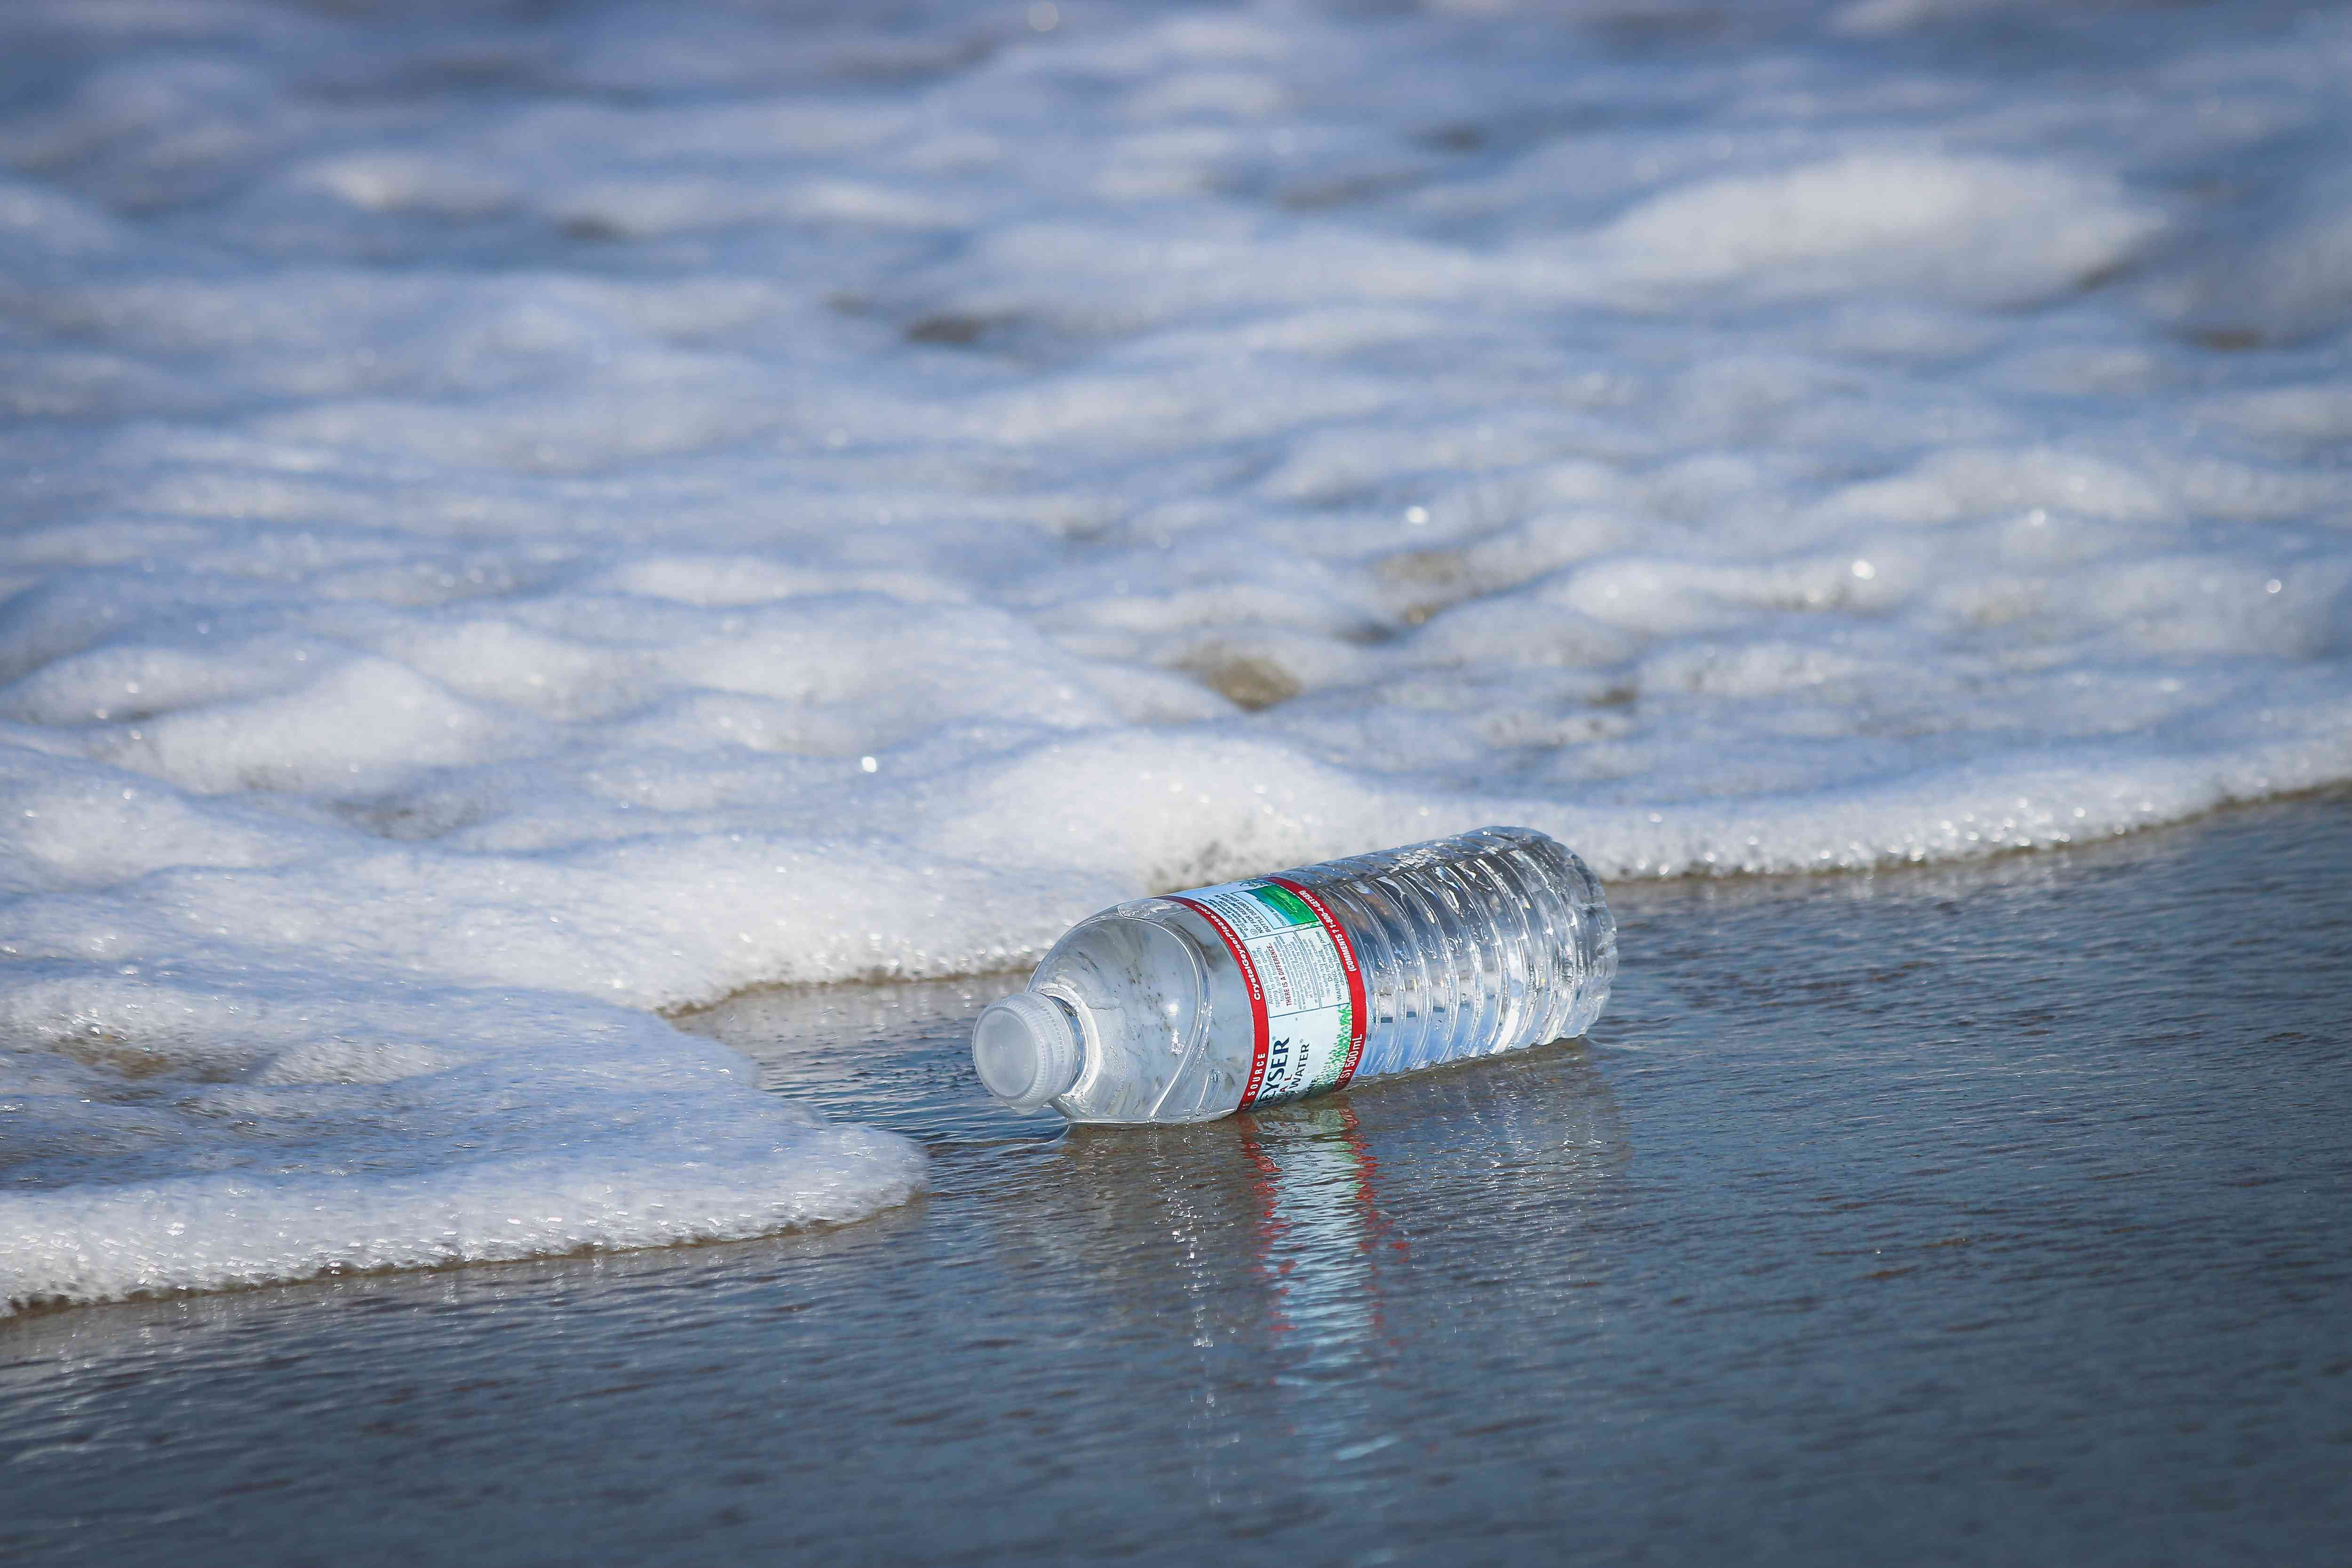 Plastic water bottle next to the surf on a beach